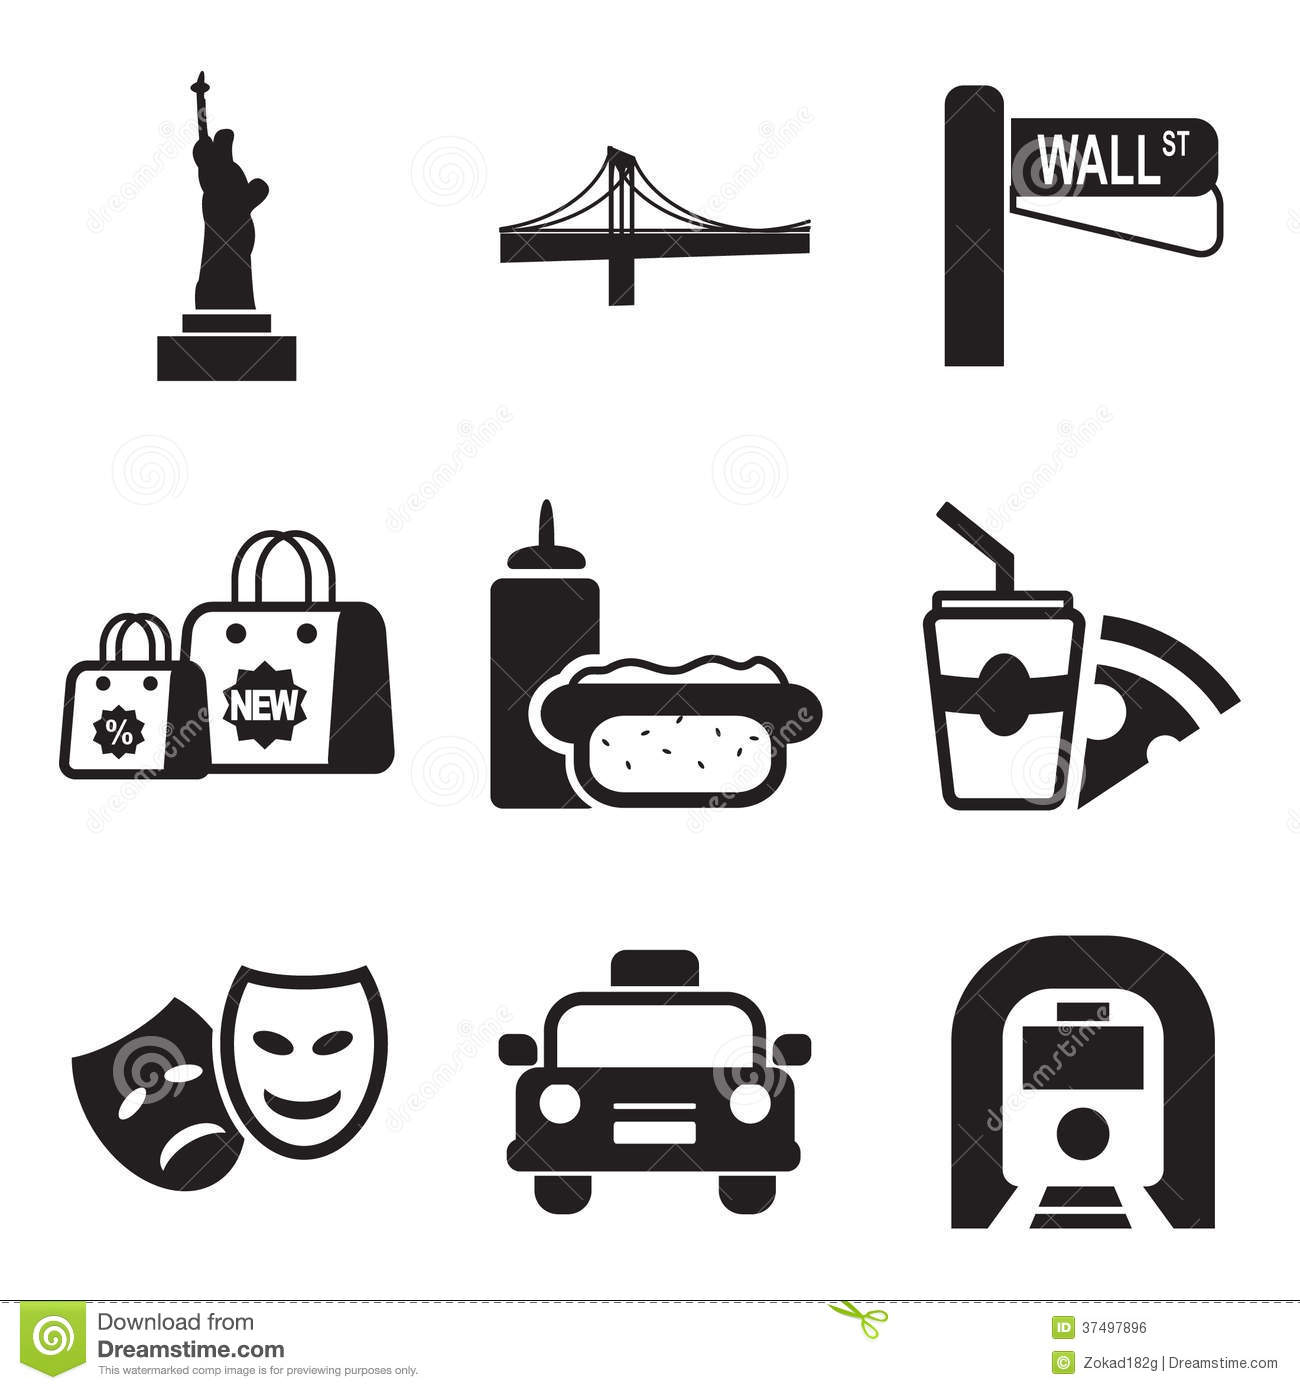 De Pictogrammen van New York